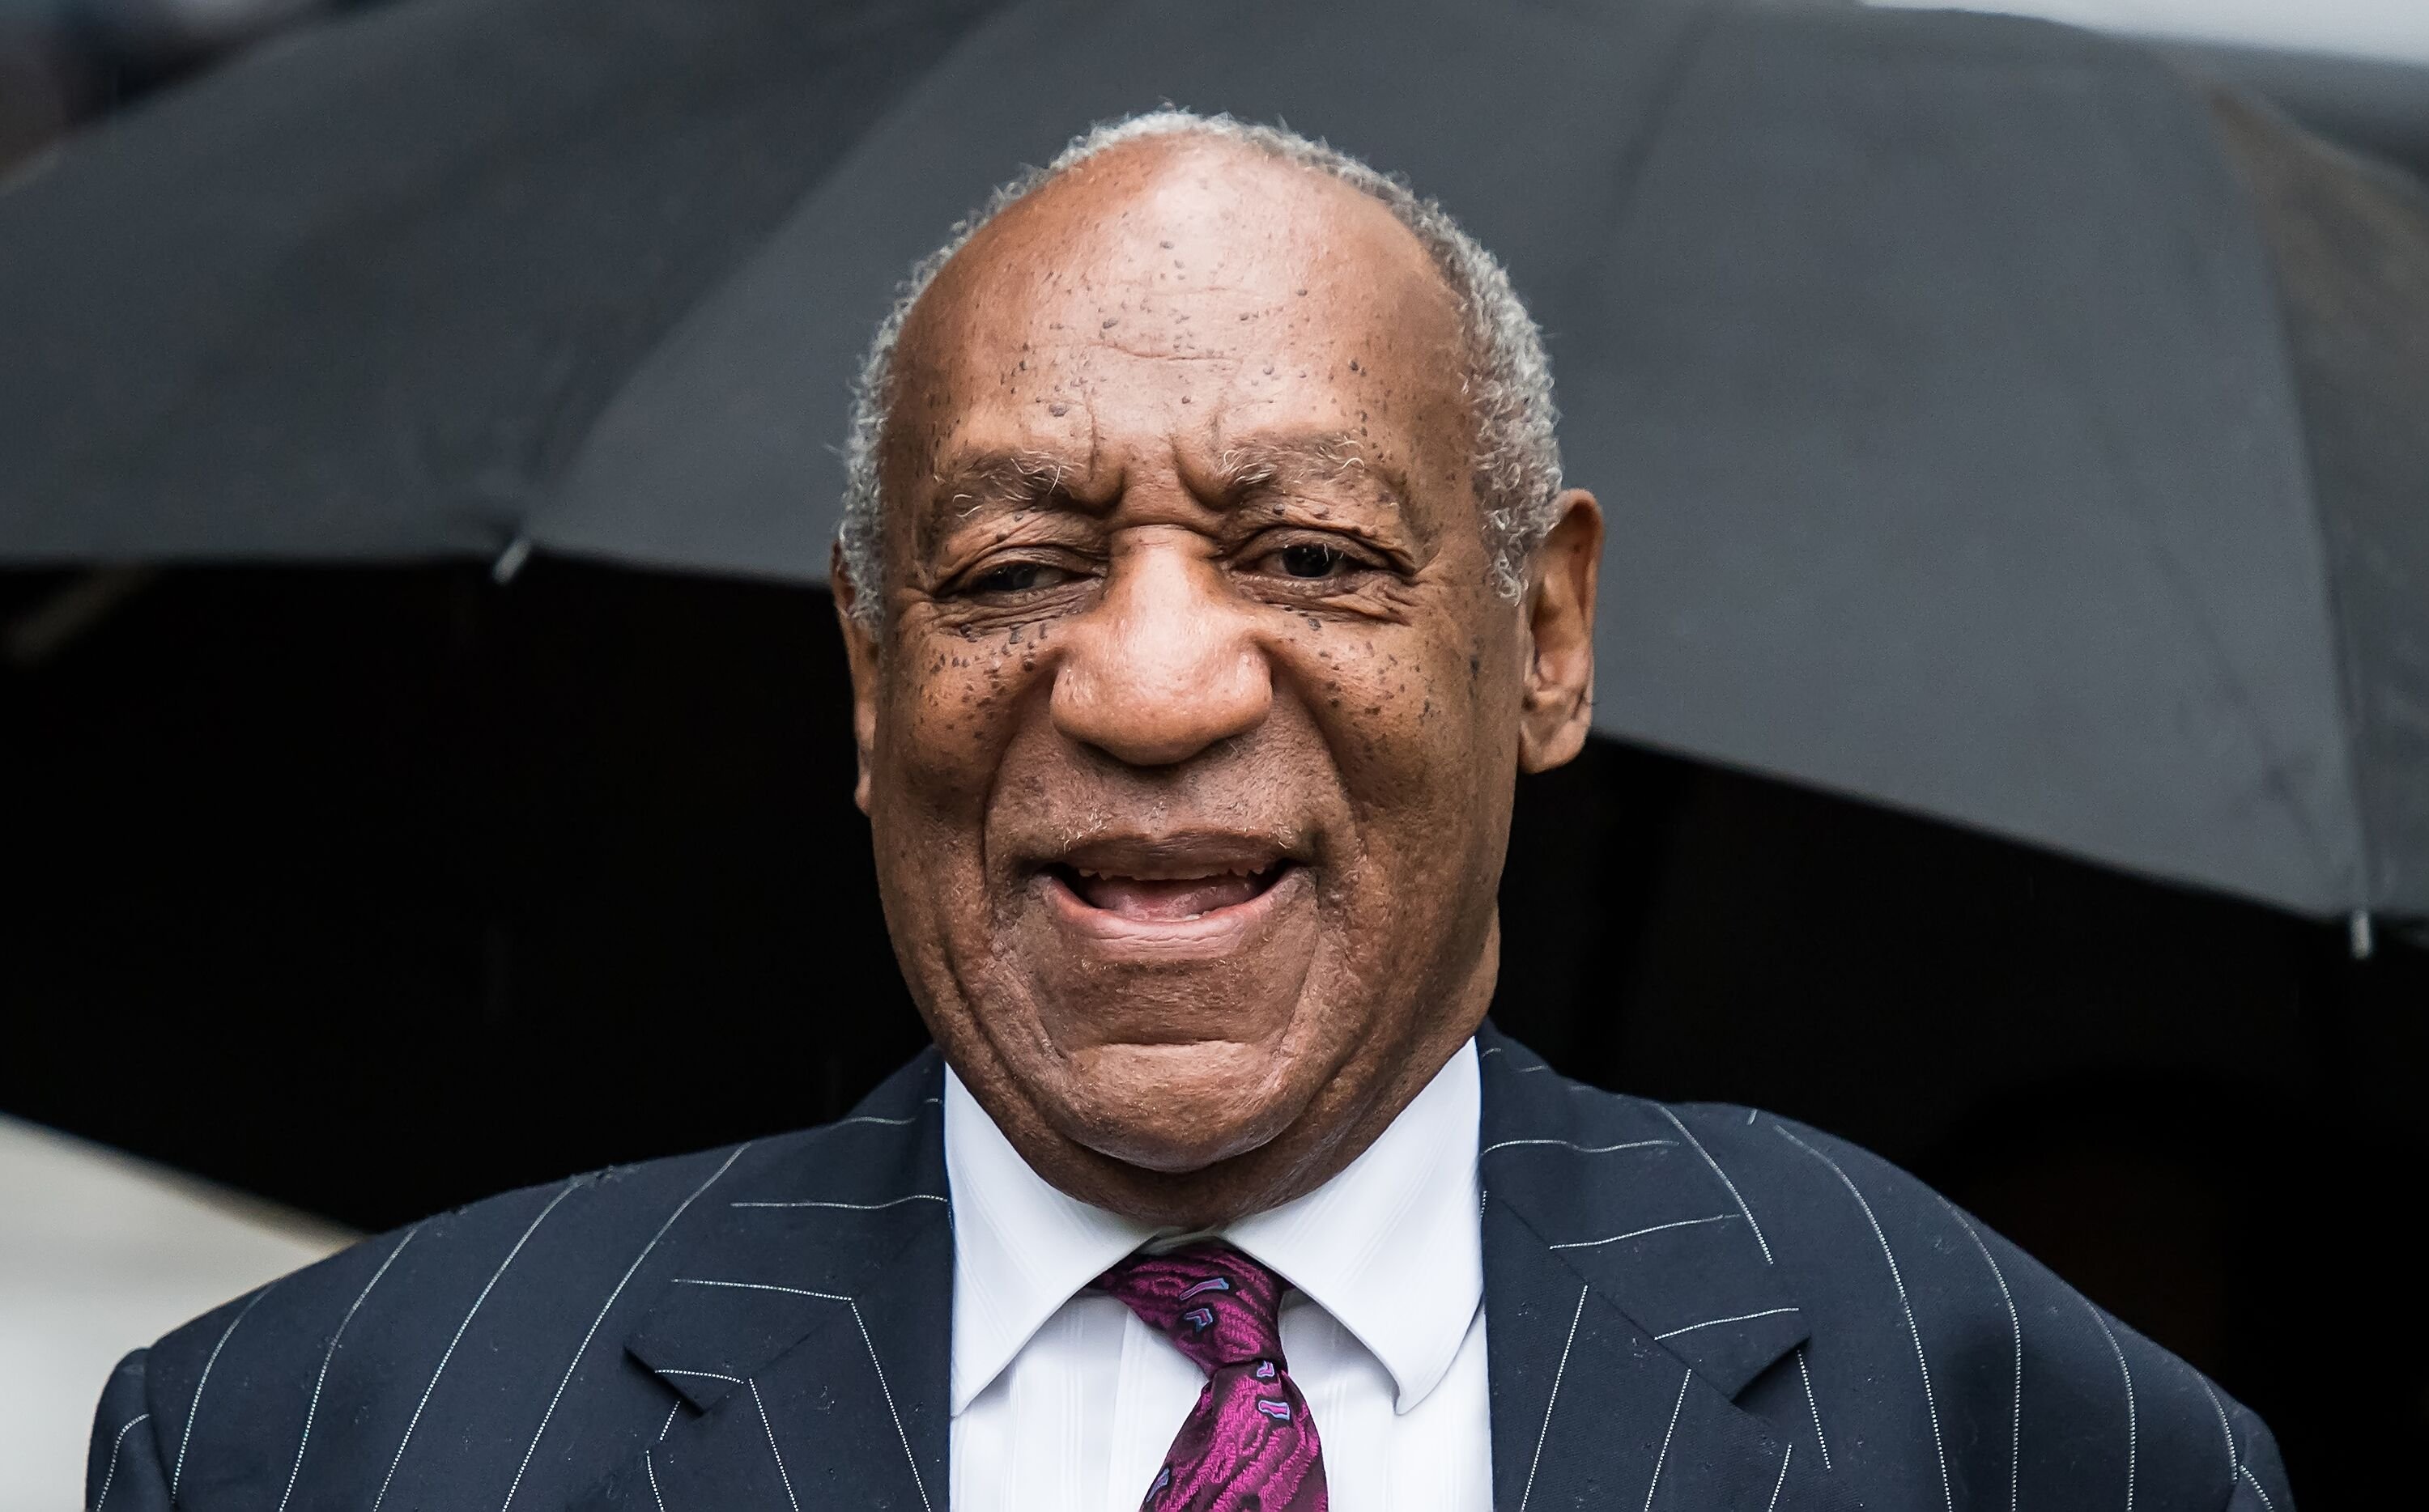 Bill Cosby exiting the courtroom during the Andrea Constand trial/ Source: Getty Images/ Getty Images